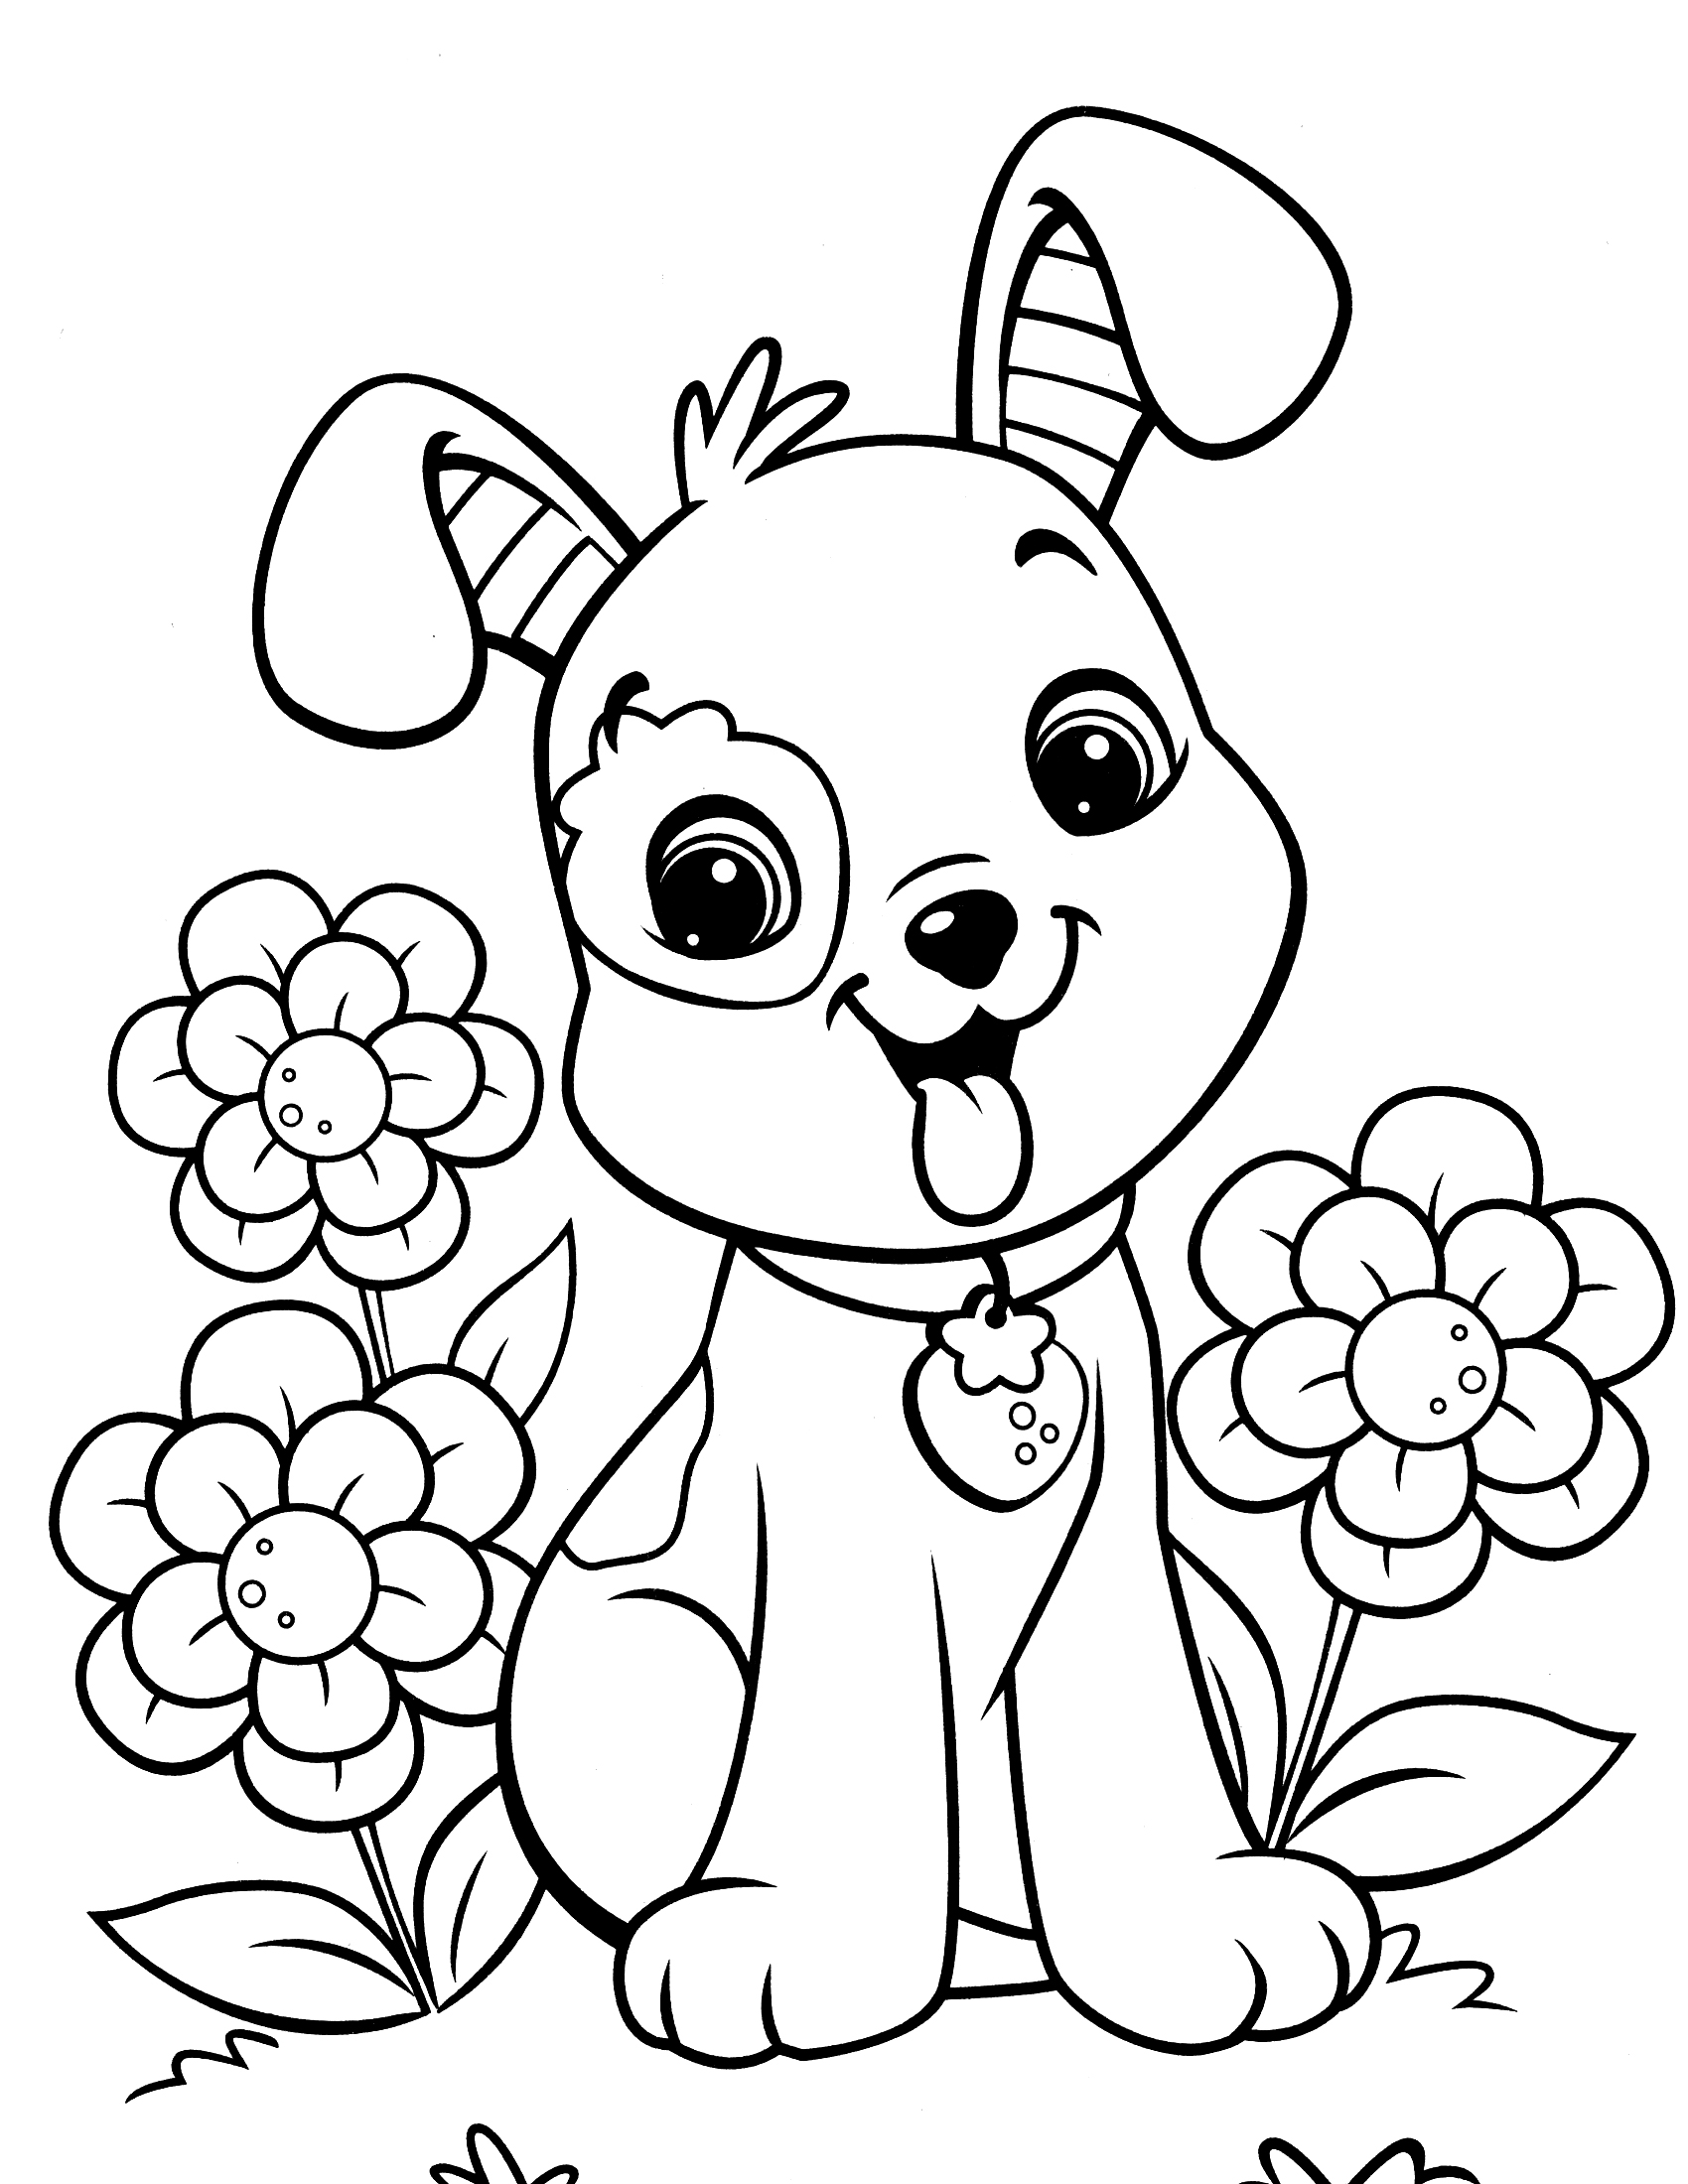 Coloring pages of puppies